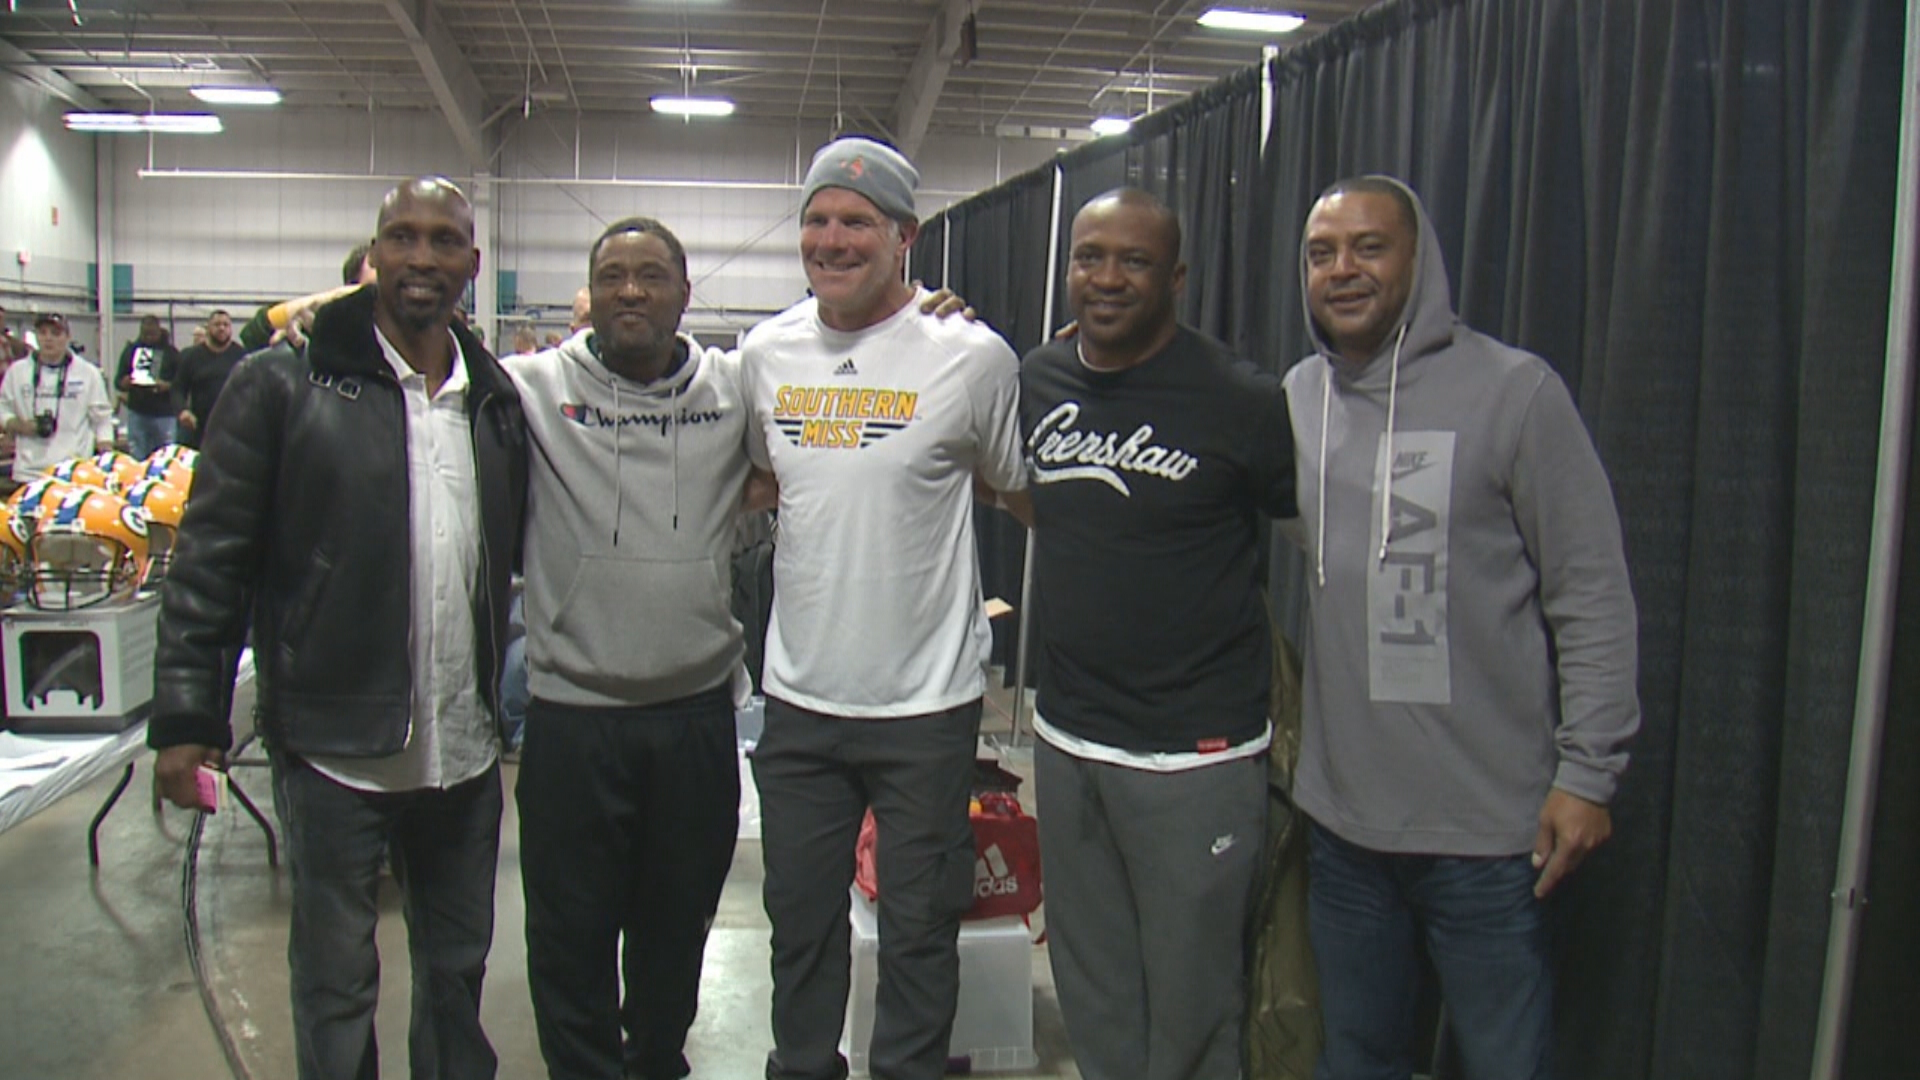 Robert Brooks. Andre Rison, Brett Favre,{ }Derrick Mayes and Antonio Freeman met together for an autograph signing in West Allis, December 1, 2018. (WITI-TV)